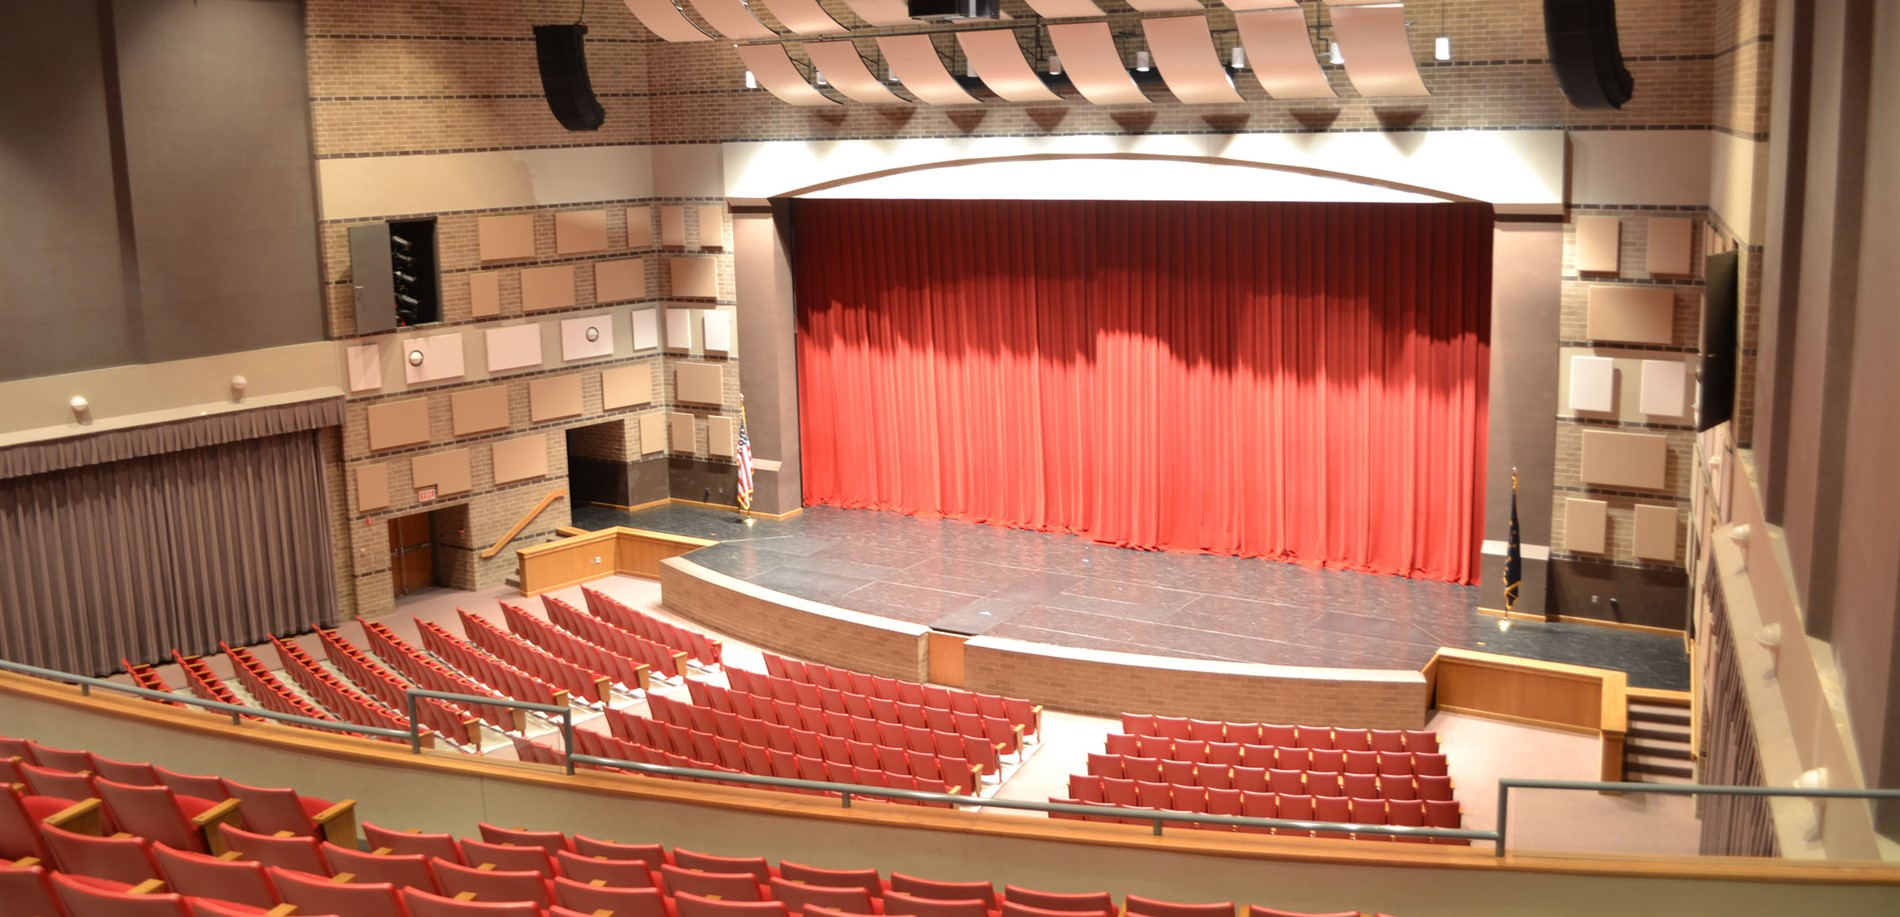 Home - PERFORMING ARTS CENTER